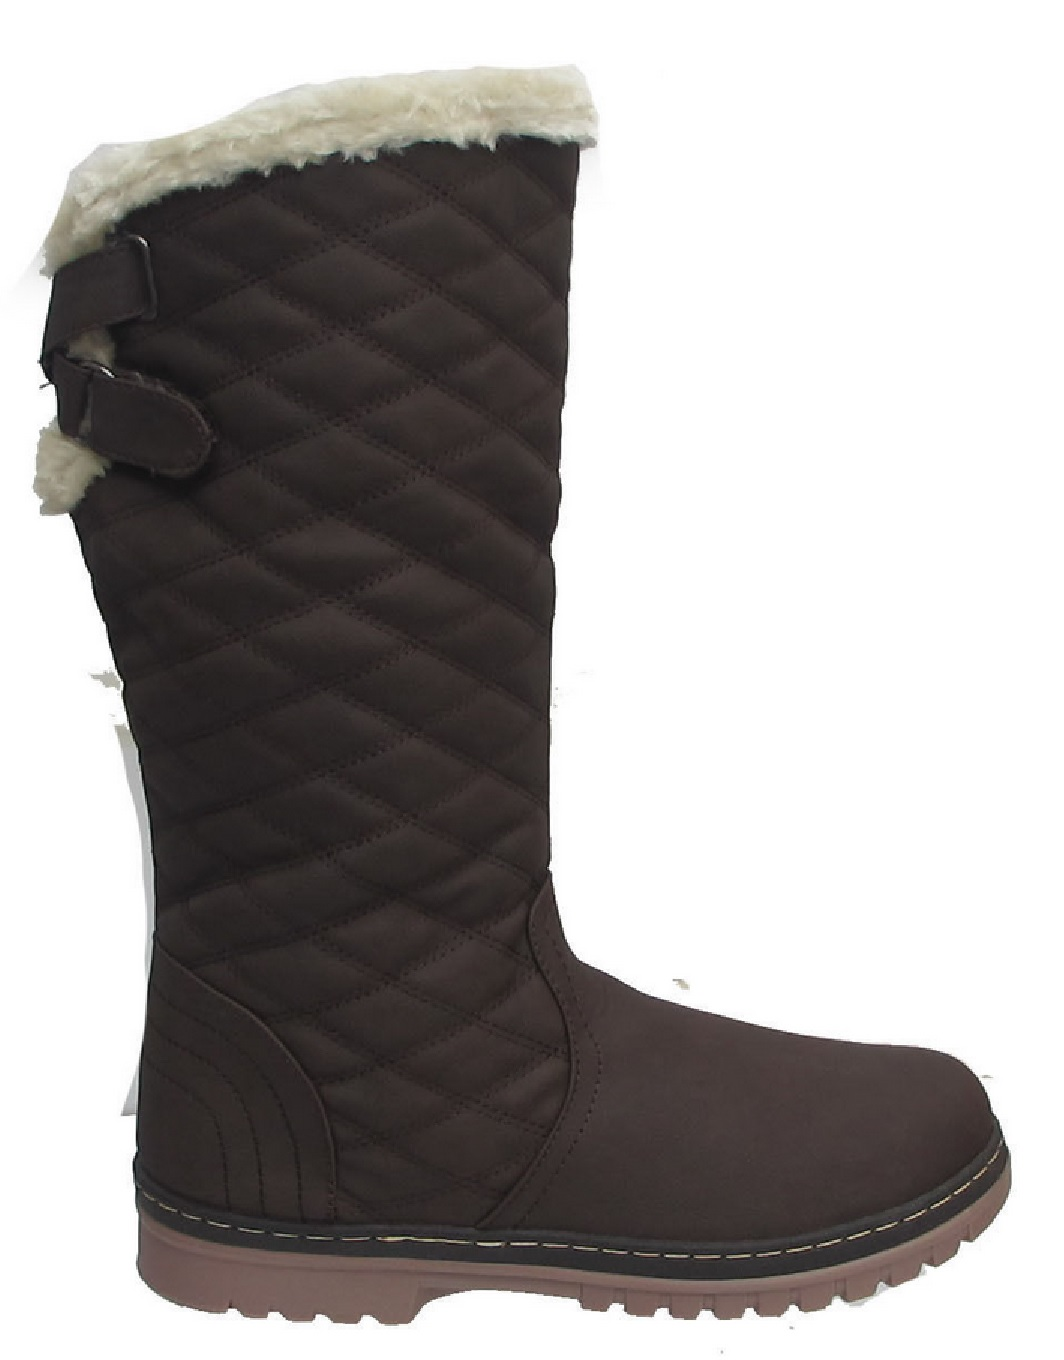 NEW LADIES WINTER WOMENS QUILTED GRIP SOLE MID CALF FUR